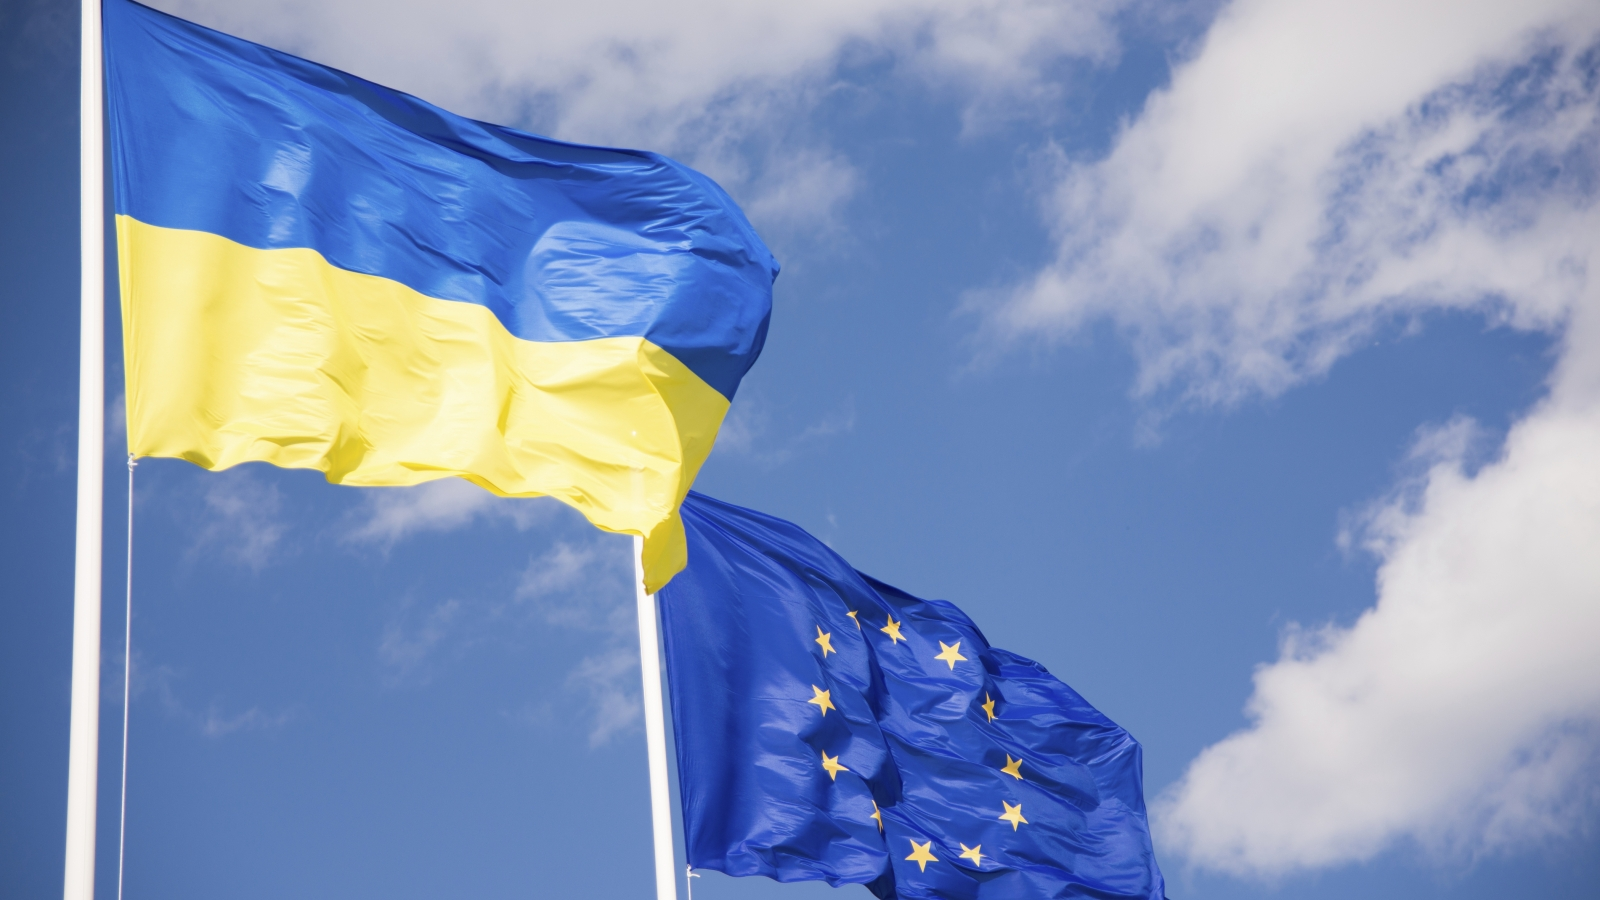 EU encourages Ukraine to continue reforms for strengthening human rights